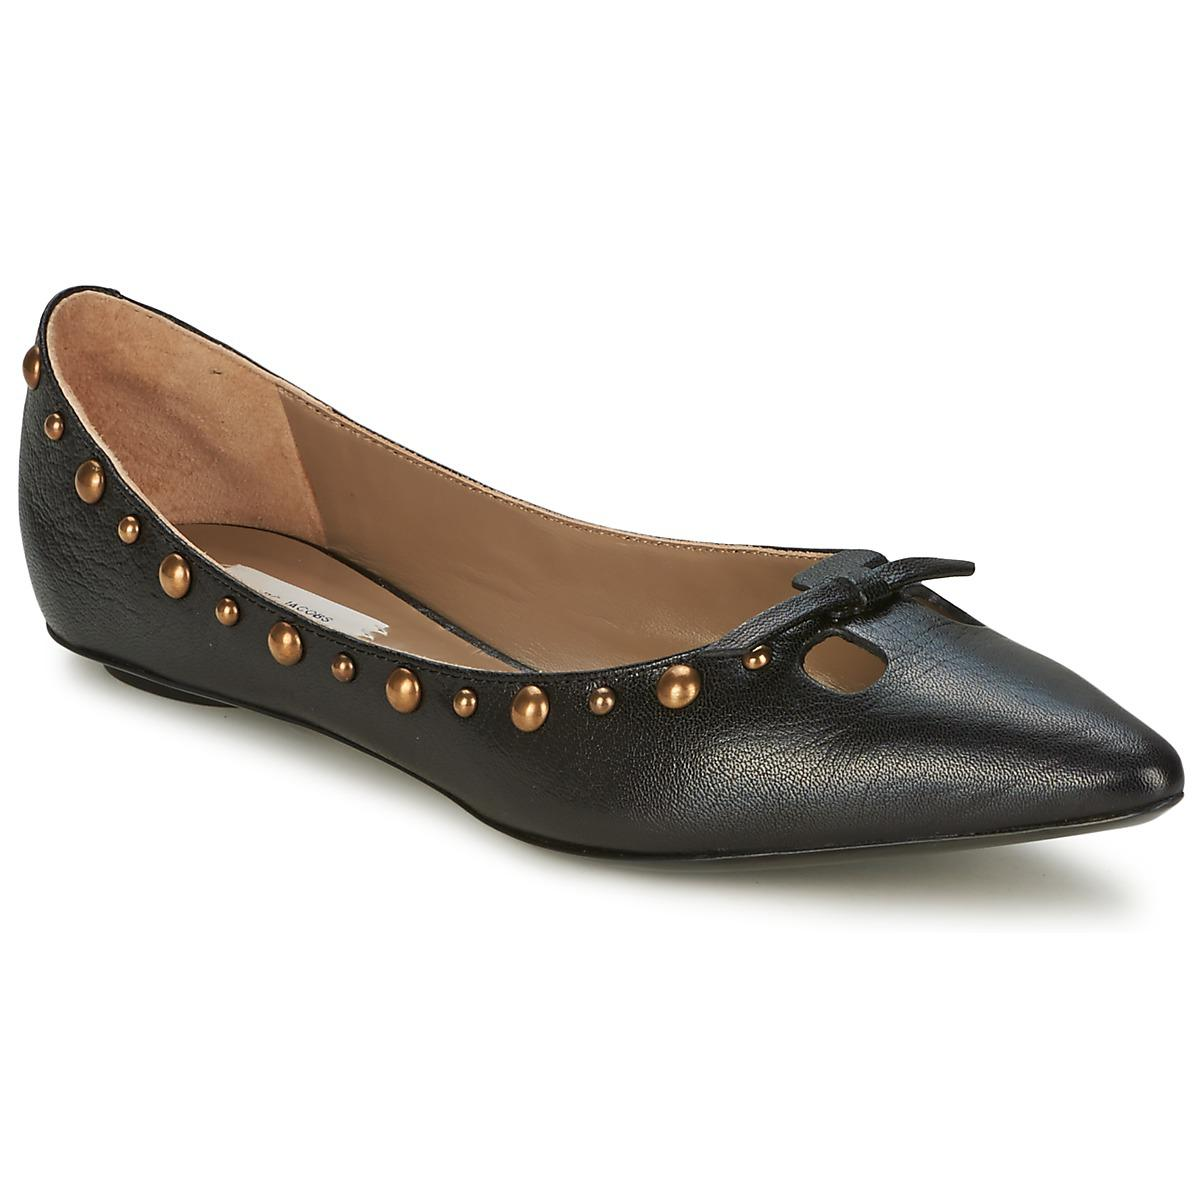 For Sale Very Cheap Discount Largest Supplier Marc Jacobs SAHARA CALF women's Shoes (Pumps / Ballerinas) in Free Shipping How Much PRLYqWYAEJ